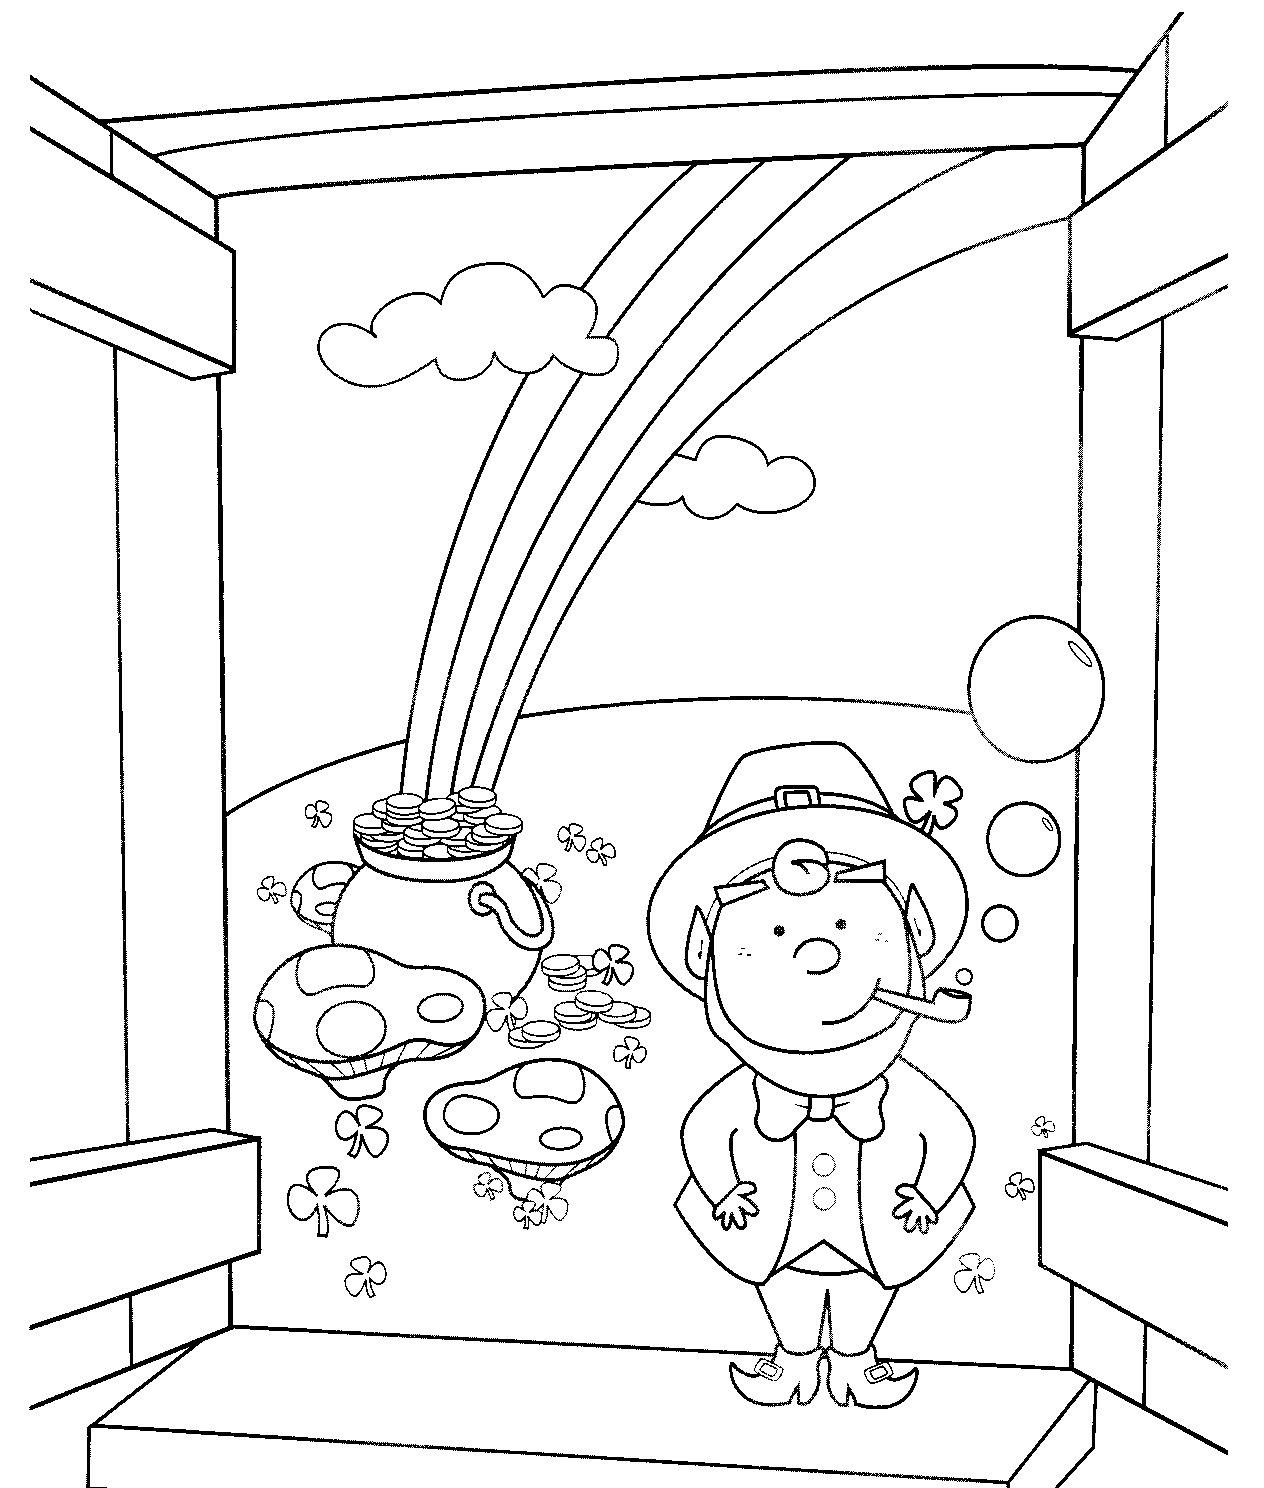 Best ideas about Free Coloring Sheets For Kids For St Patrick'S Day . Save or Pin St Patrick s Day Coloring Pages for childrens printable Now.